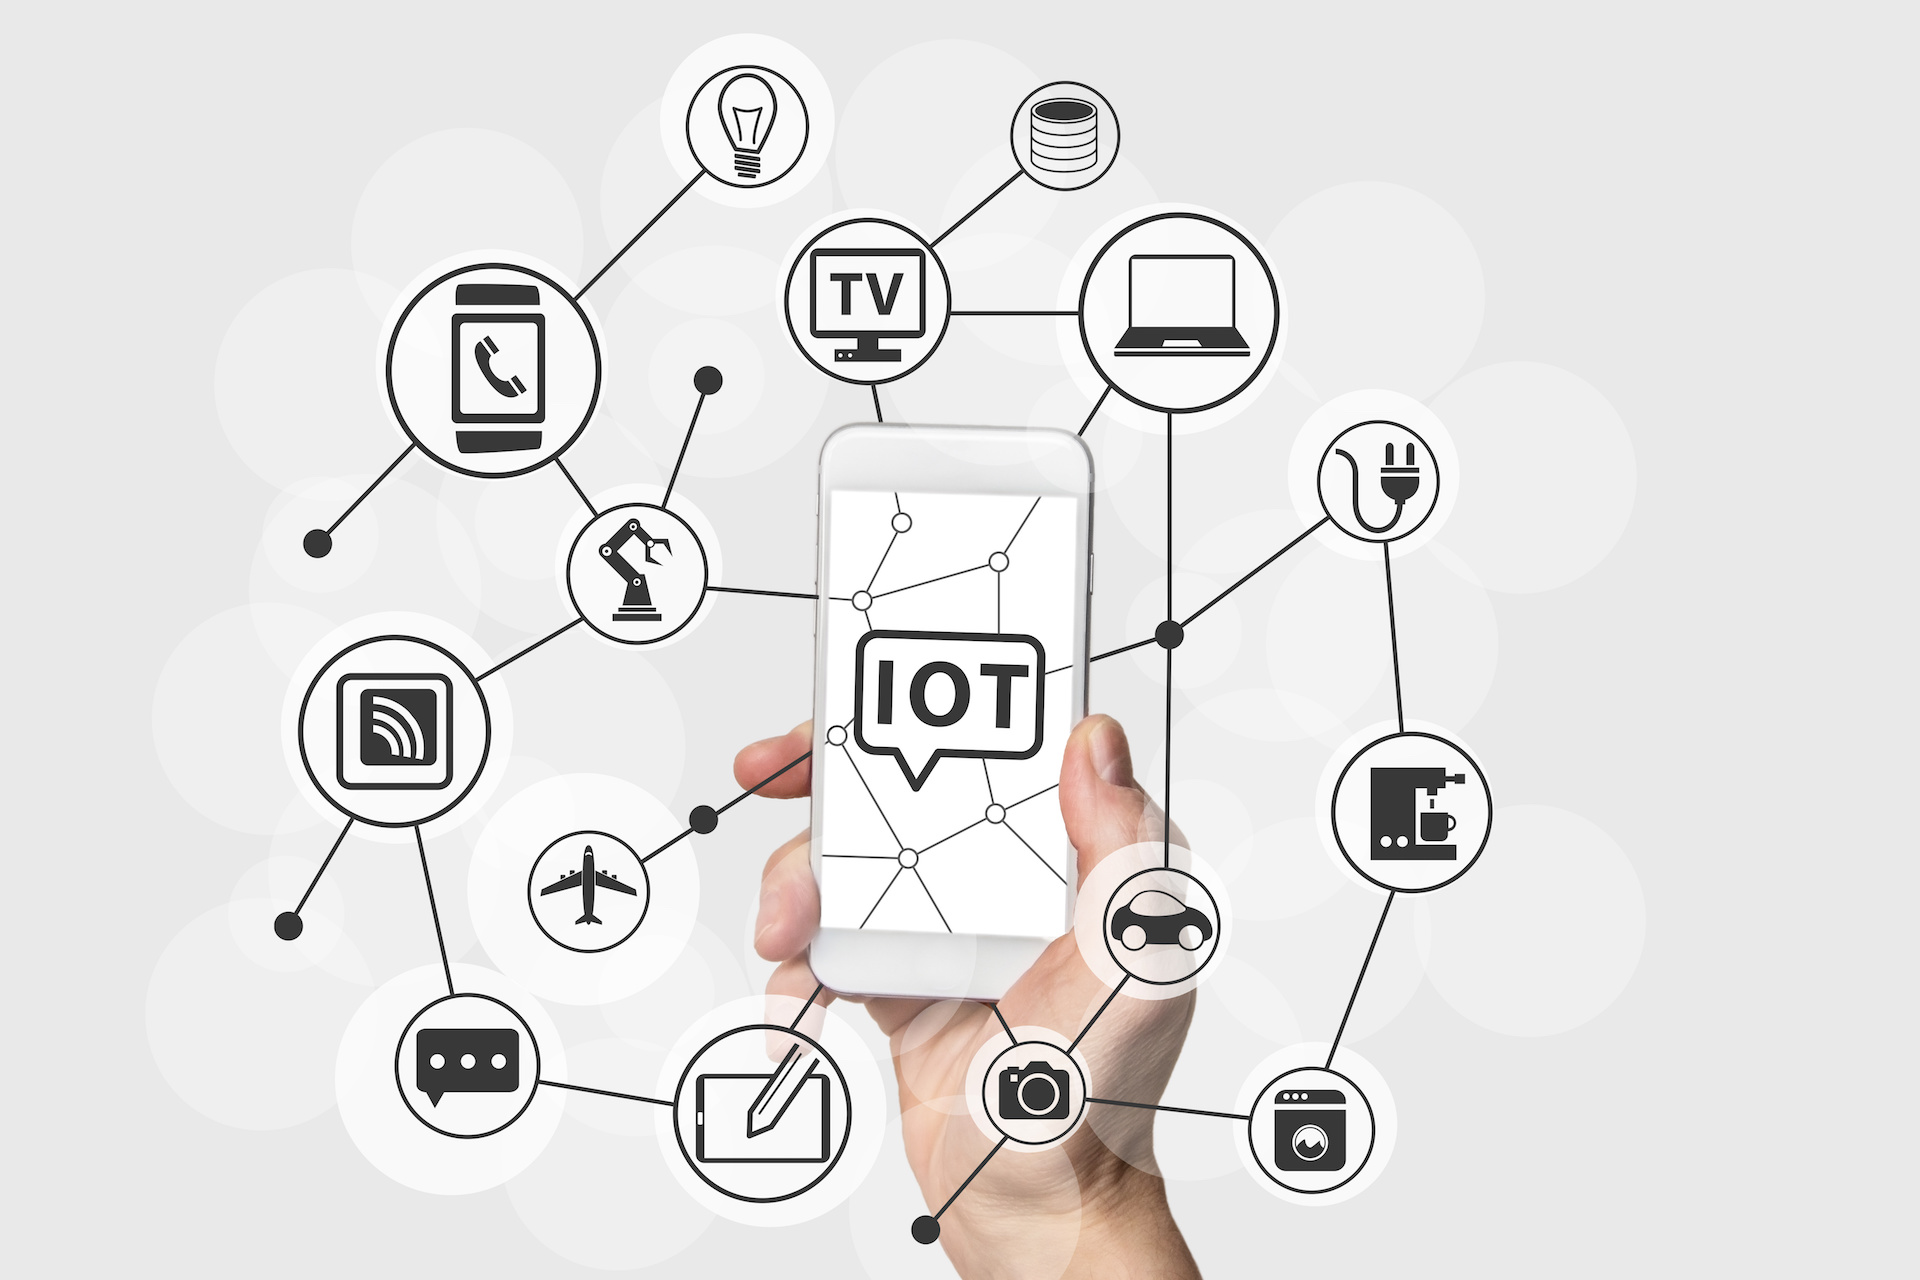 Technologent Edge Computing and Internet of Things